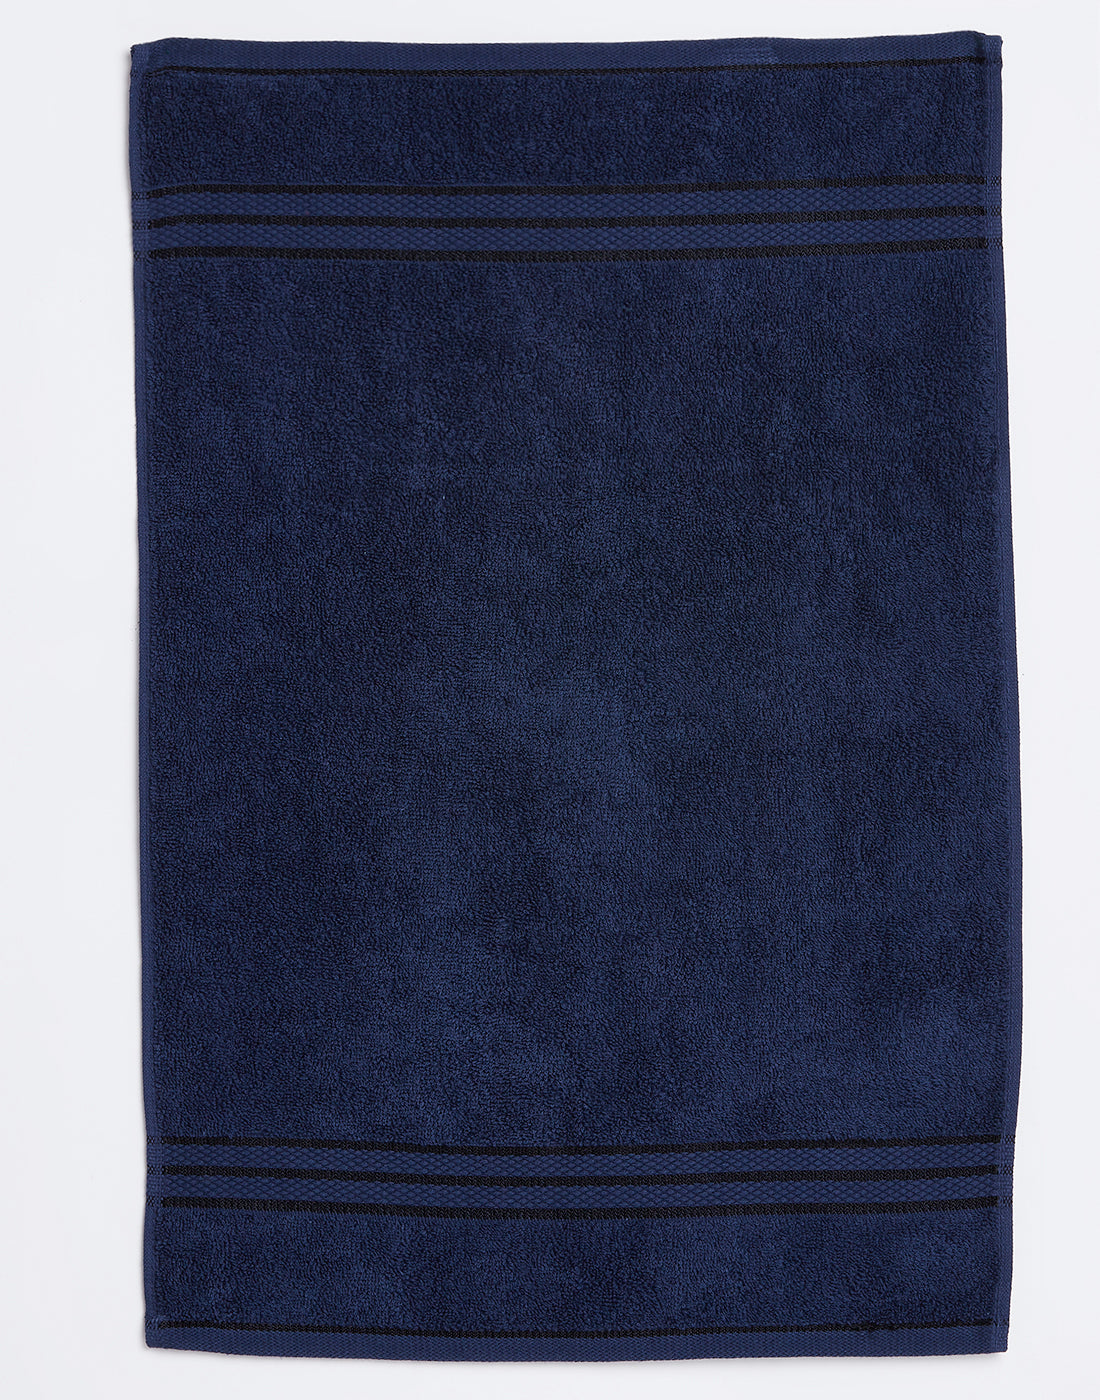 Octave Navy Set of 2 Cotton Hand Towels